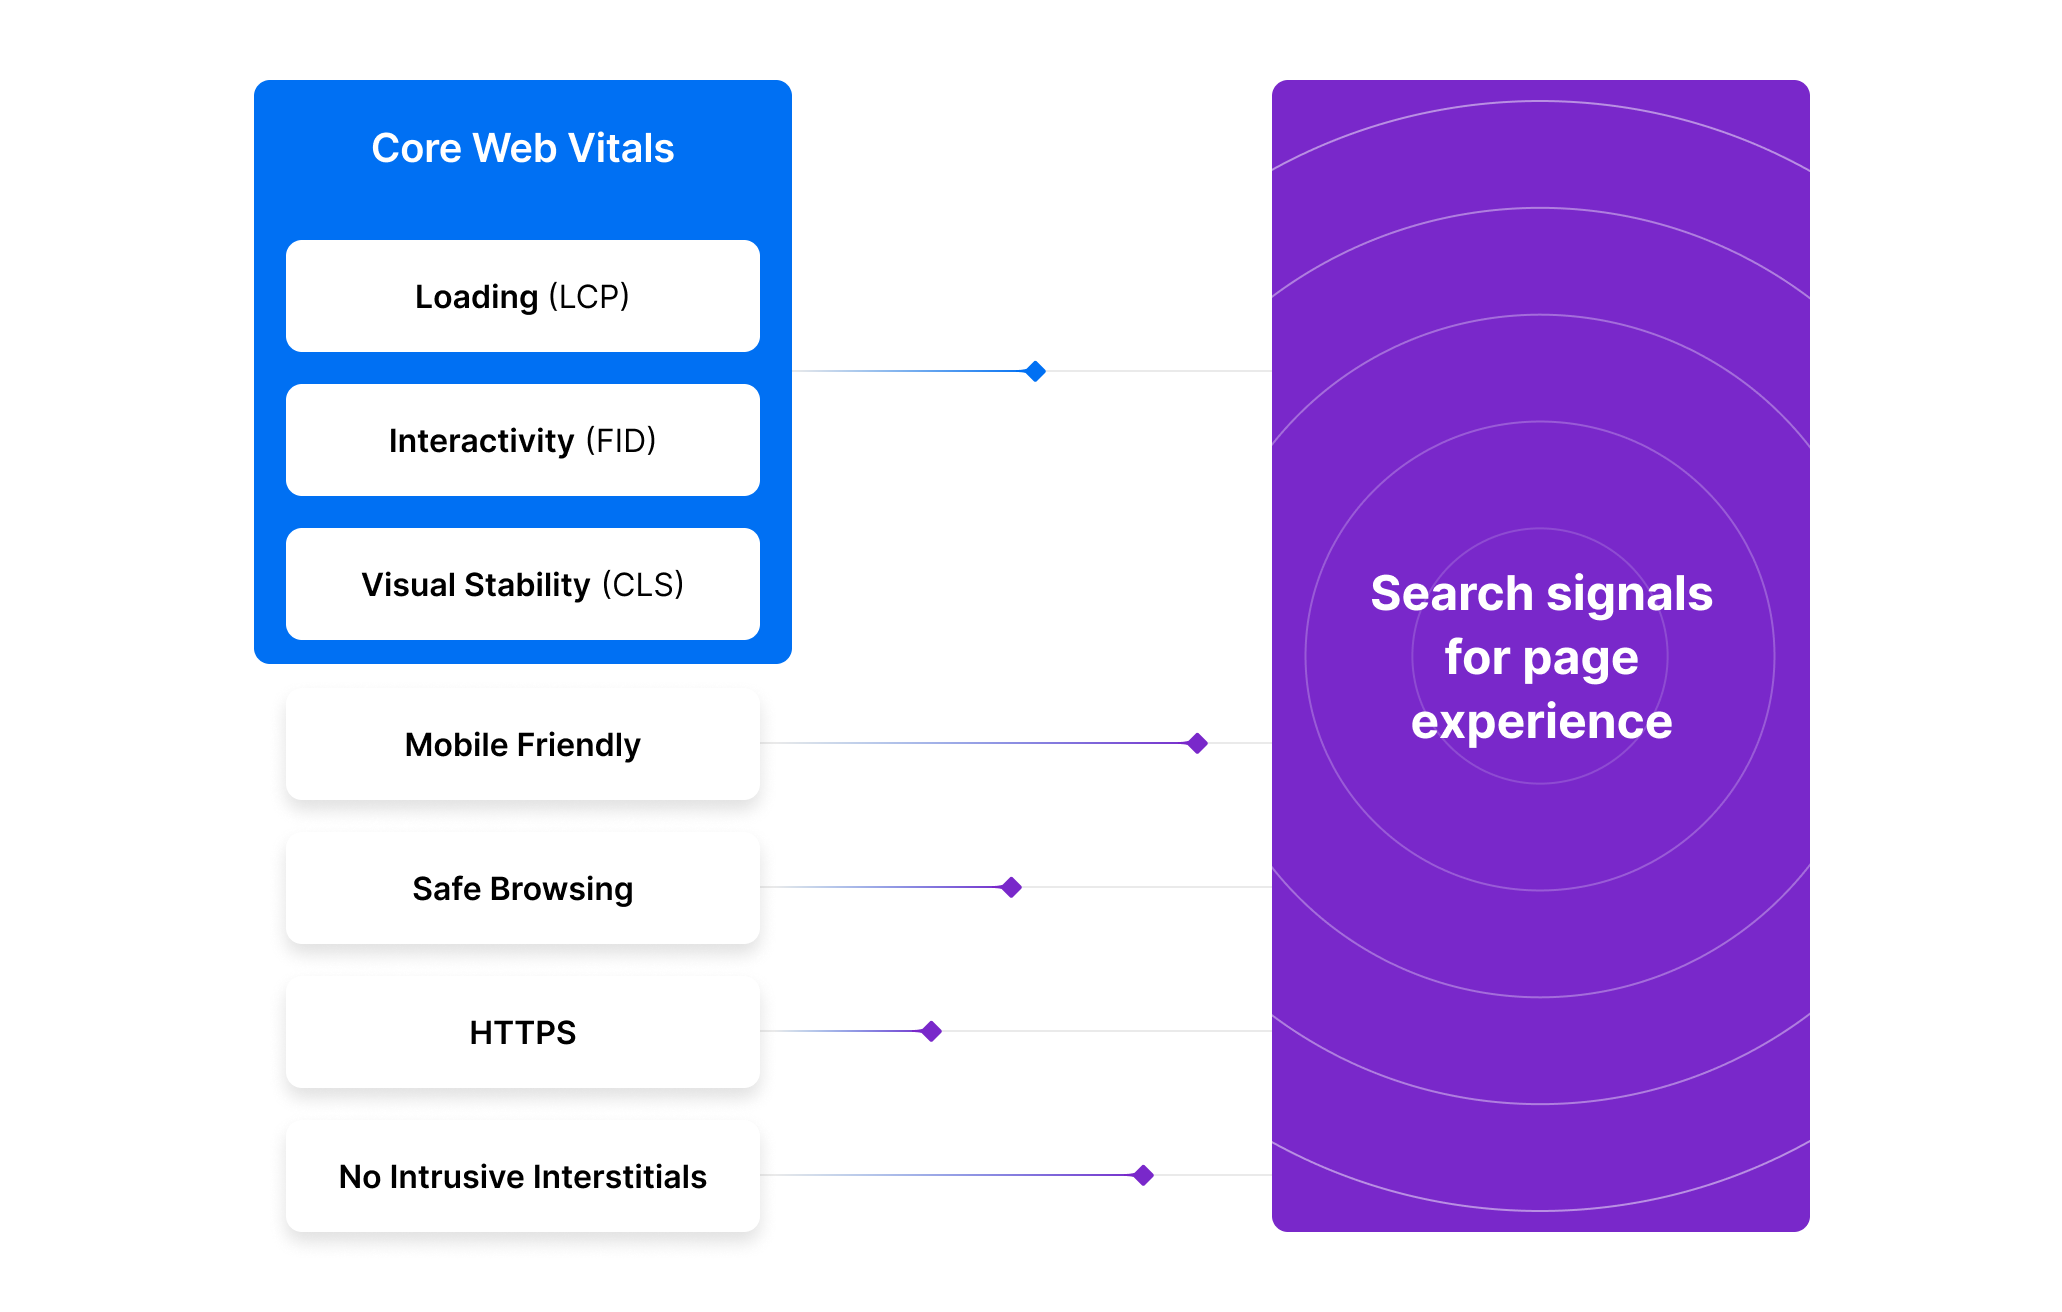 Search signals are the characteristics of your webpage that determine its Google ranking. Soon, the components of Core Web Vitals will be added to the list of signals to keep in mind when looking to improve SEO.